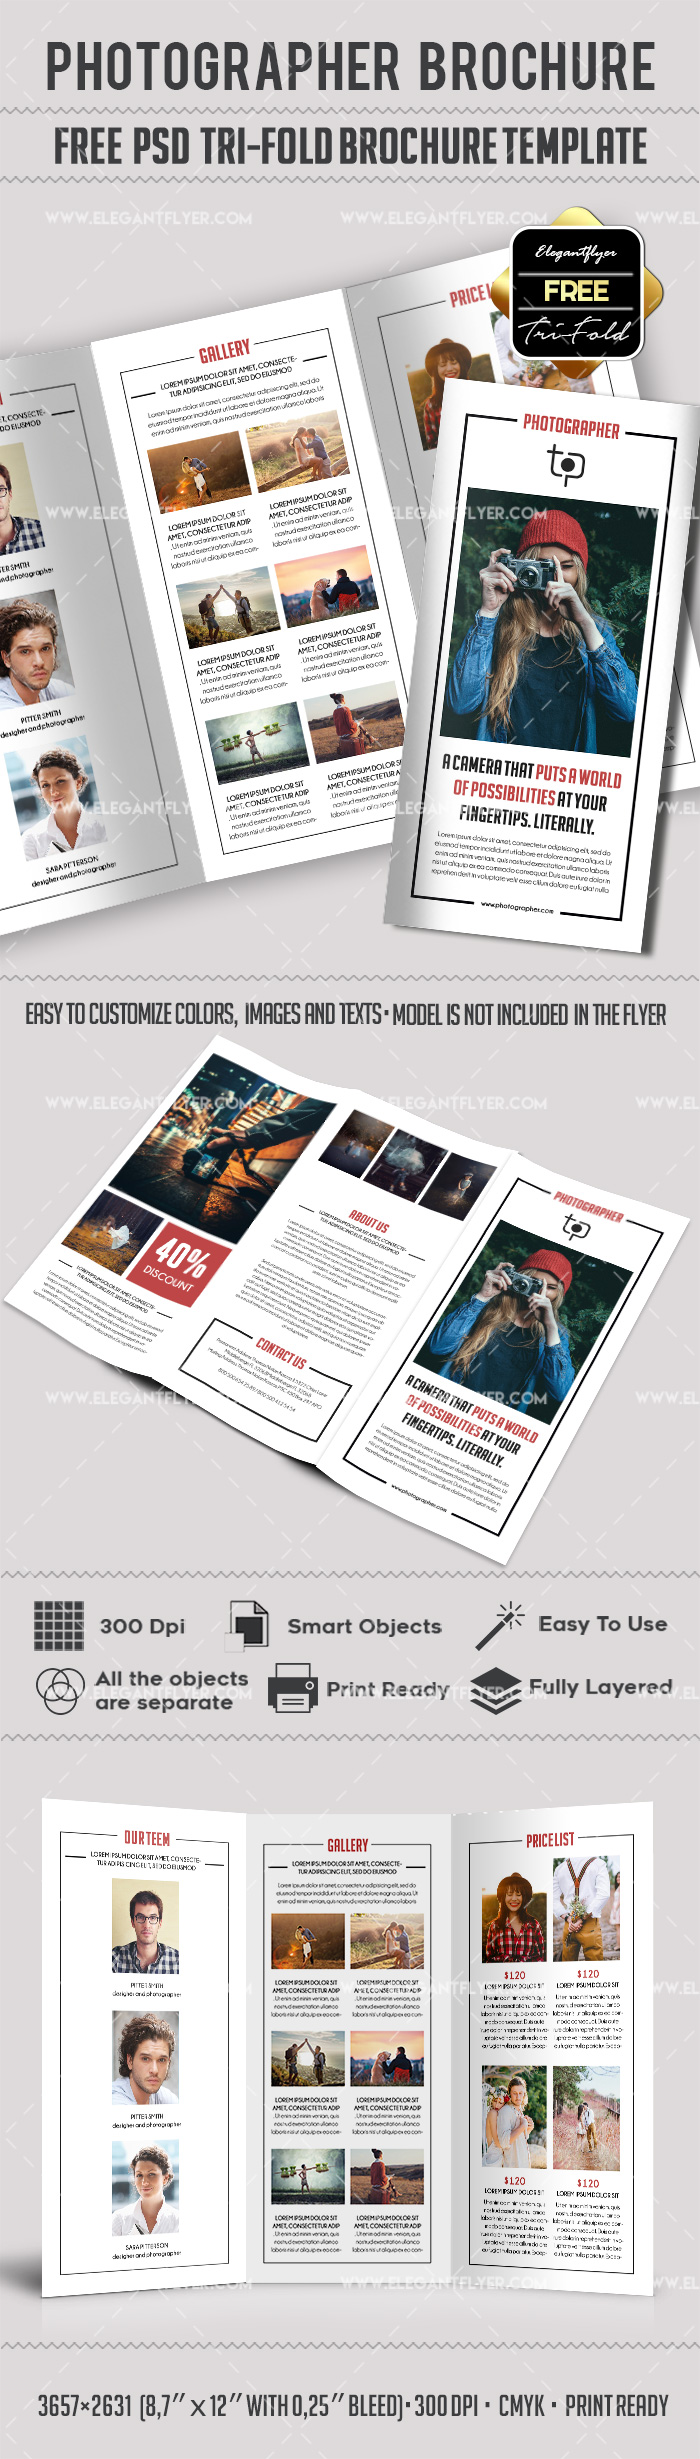 Free Photographer Brochure Tri-Fold for Printing